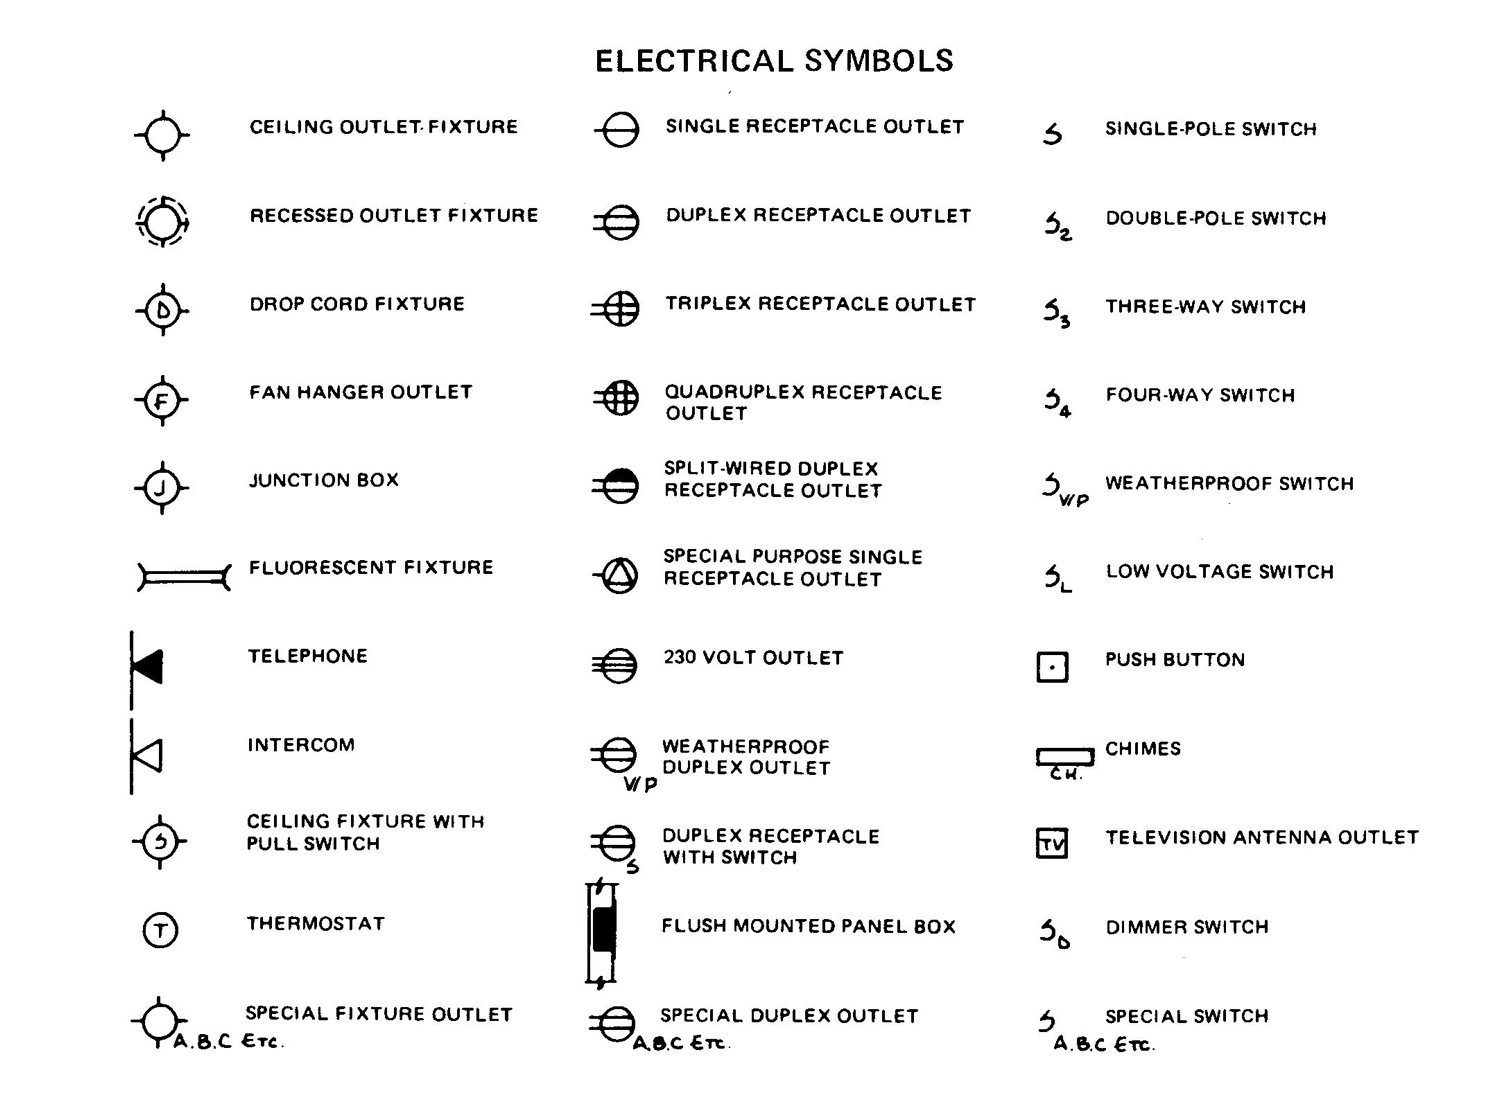 double duplex outlet wiring diagram parts of a cell rough electric wholesteading